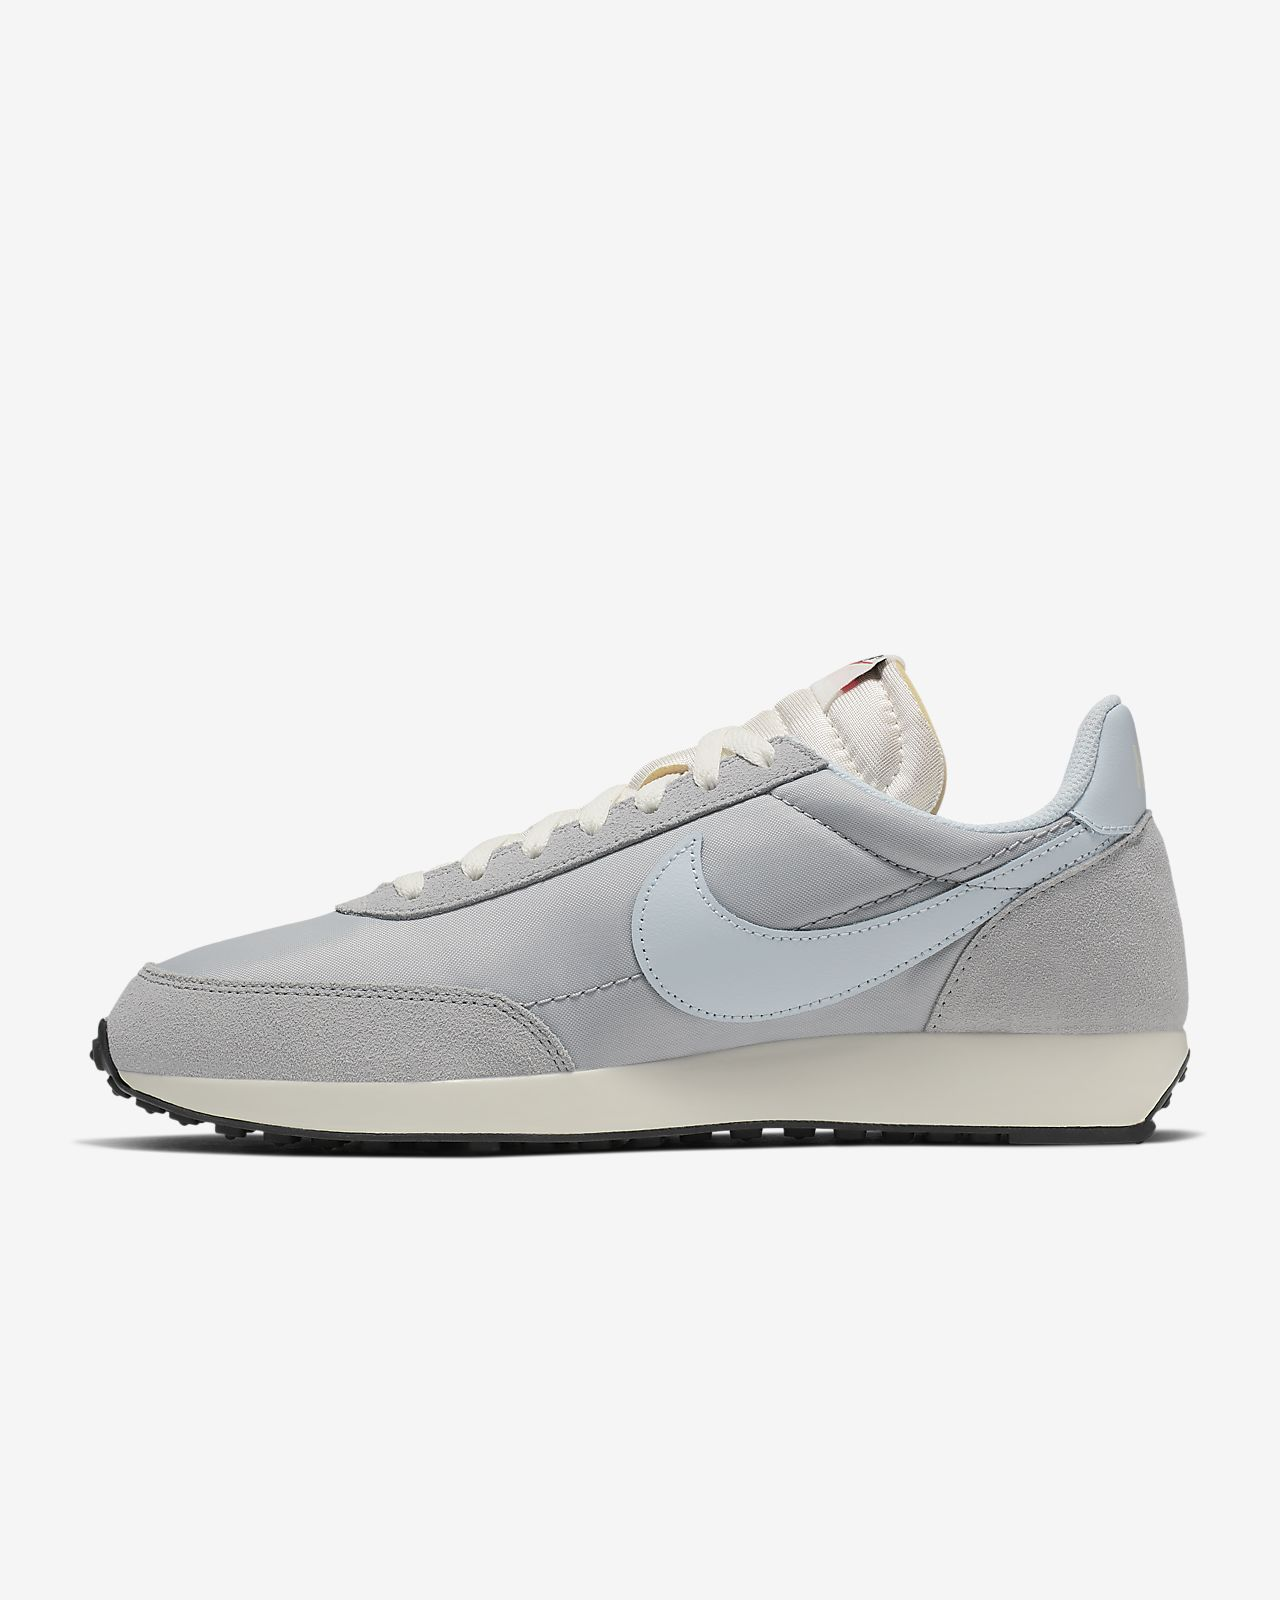 Chaussure Nike Air Tailwind 79